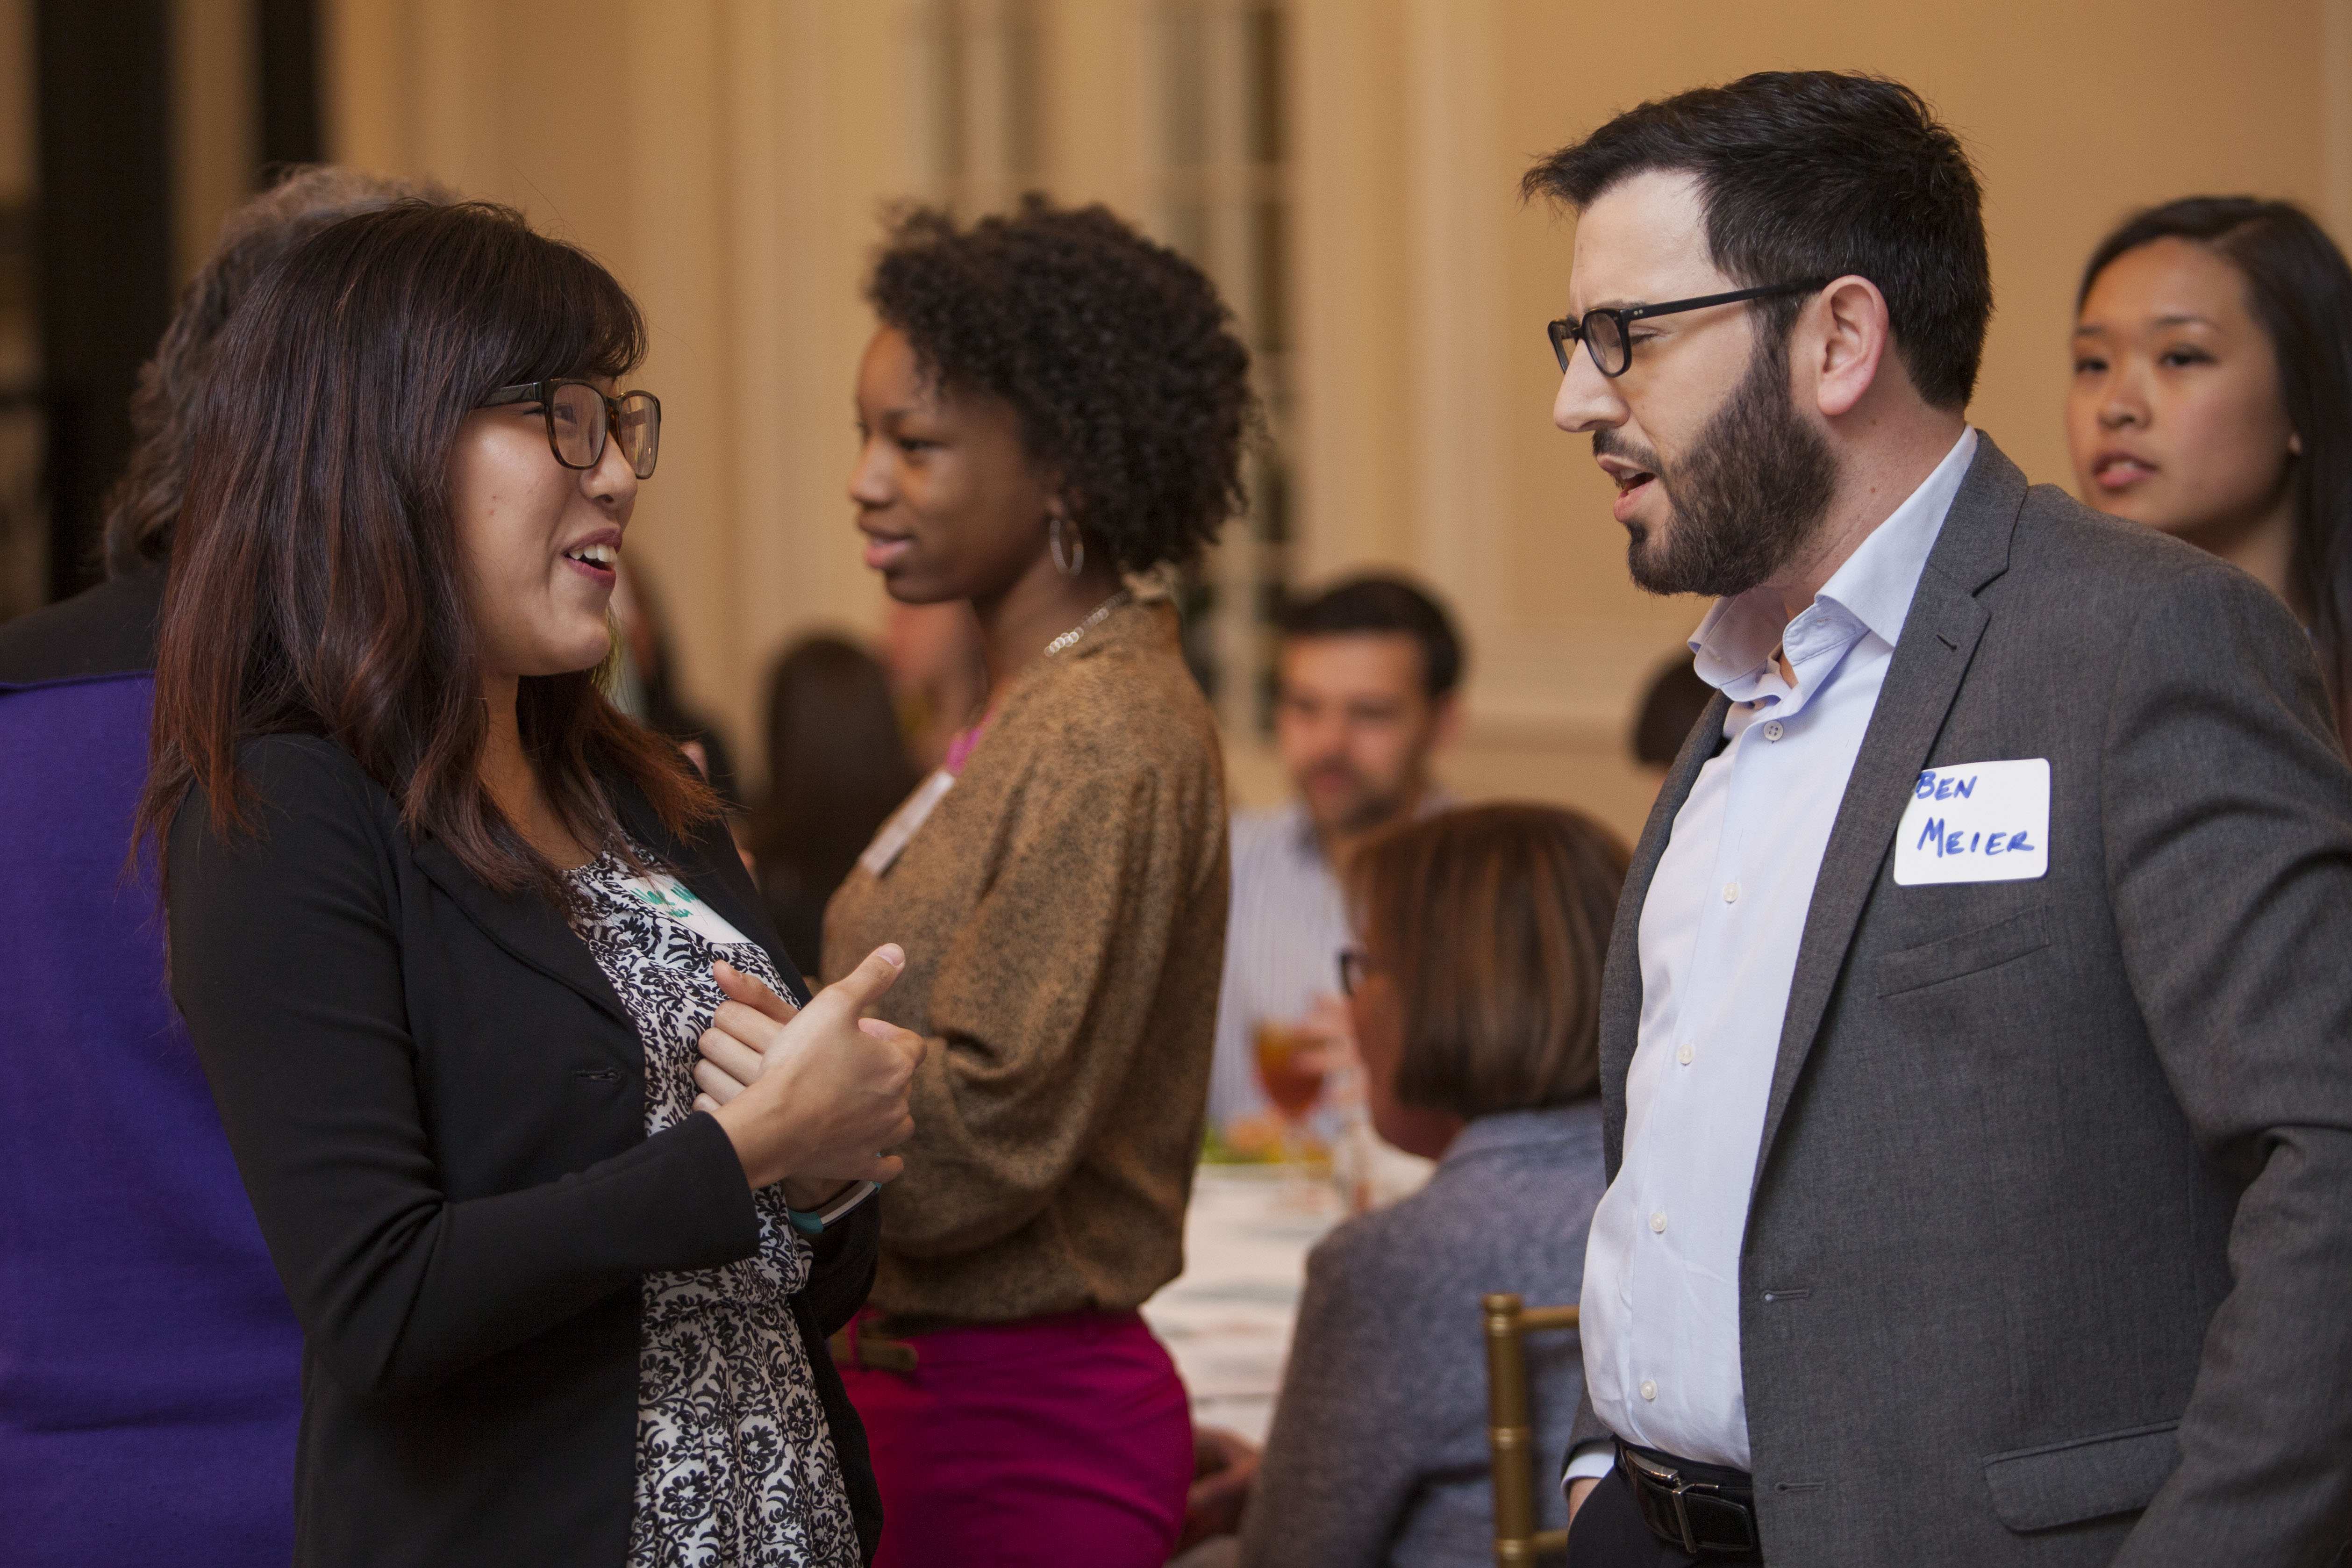 Students share ideas at an informal networking event.